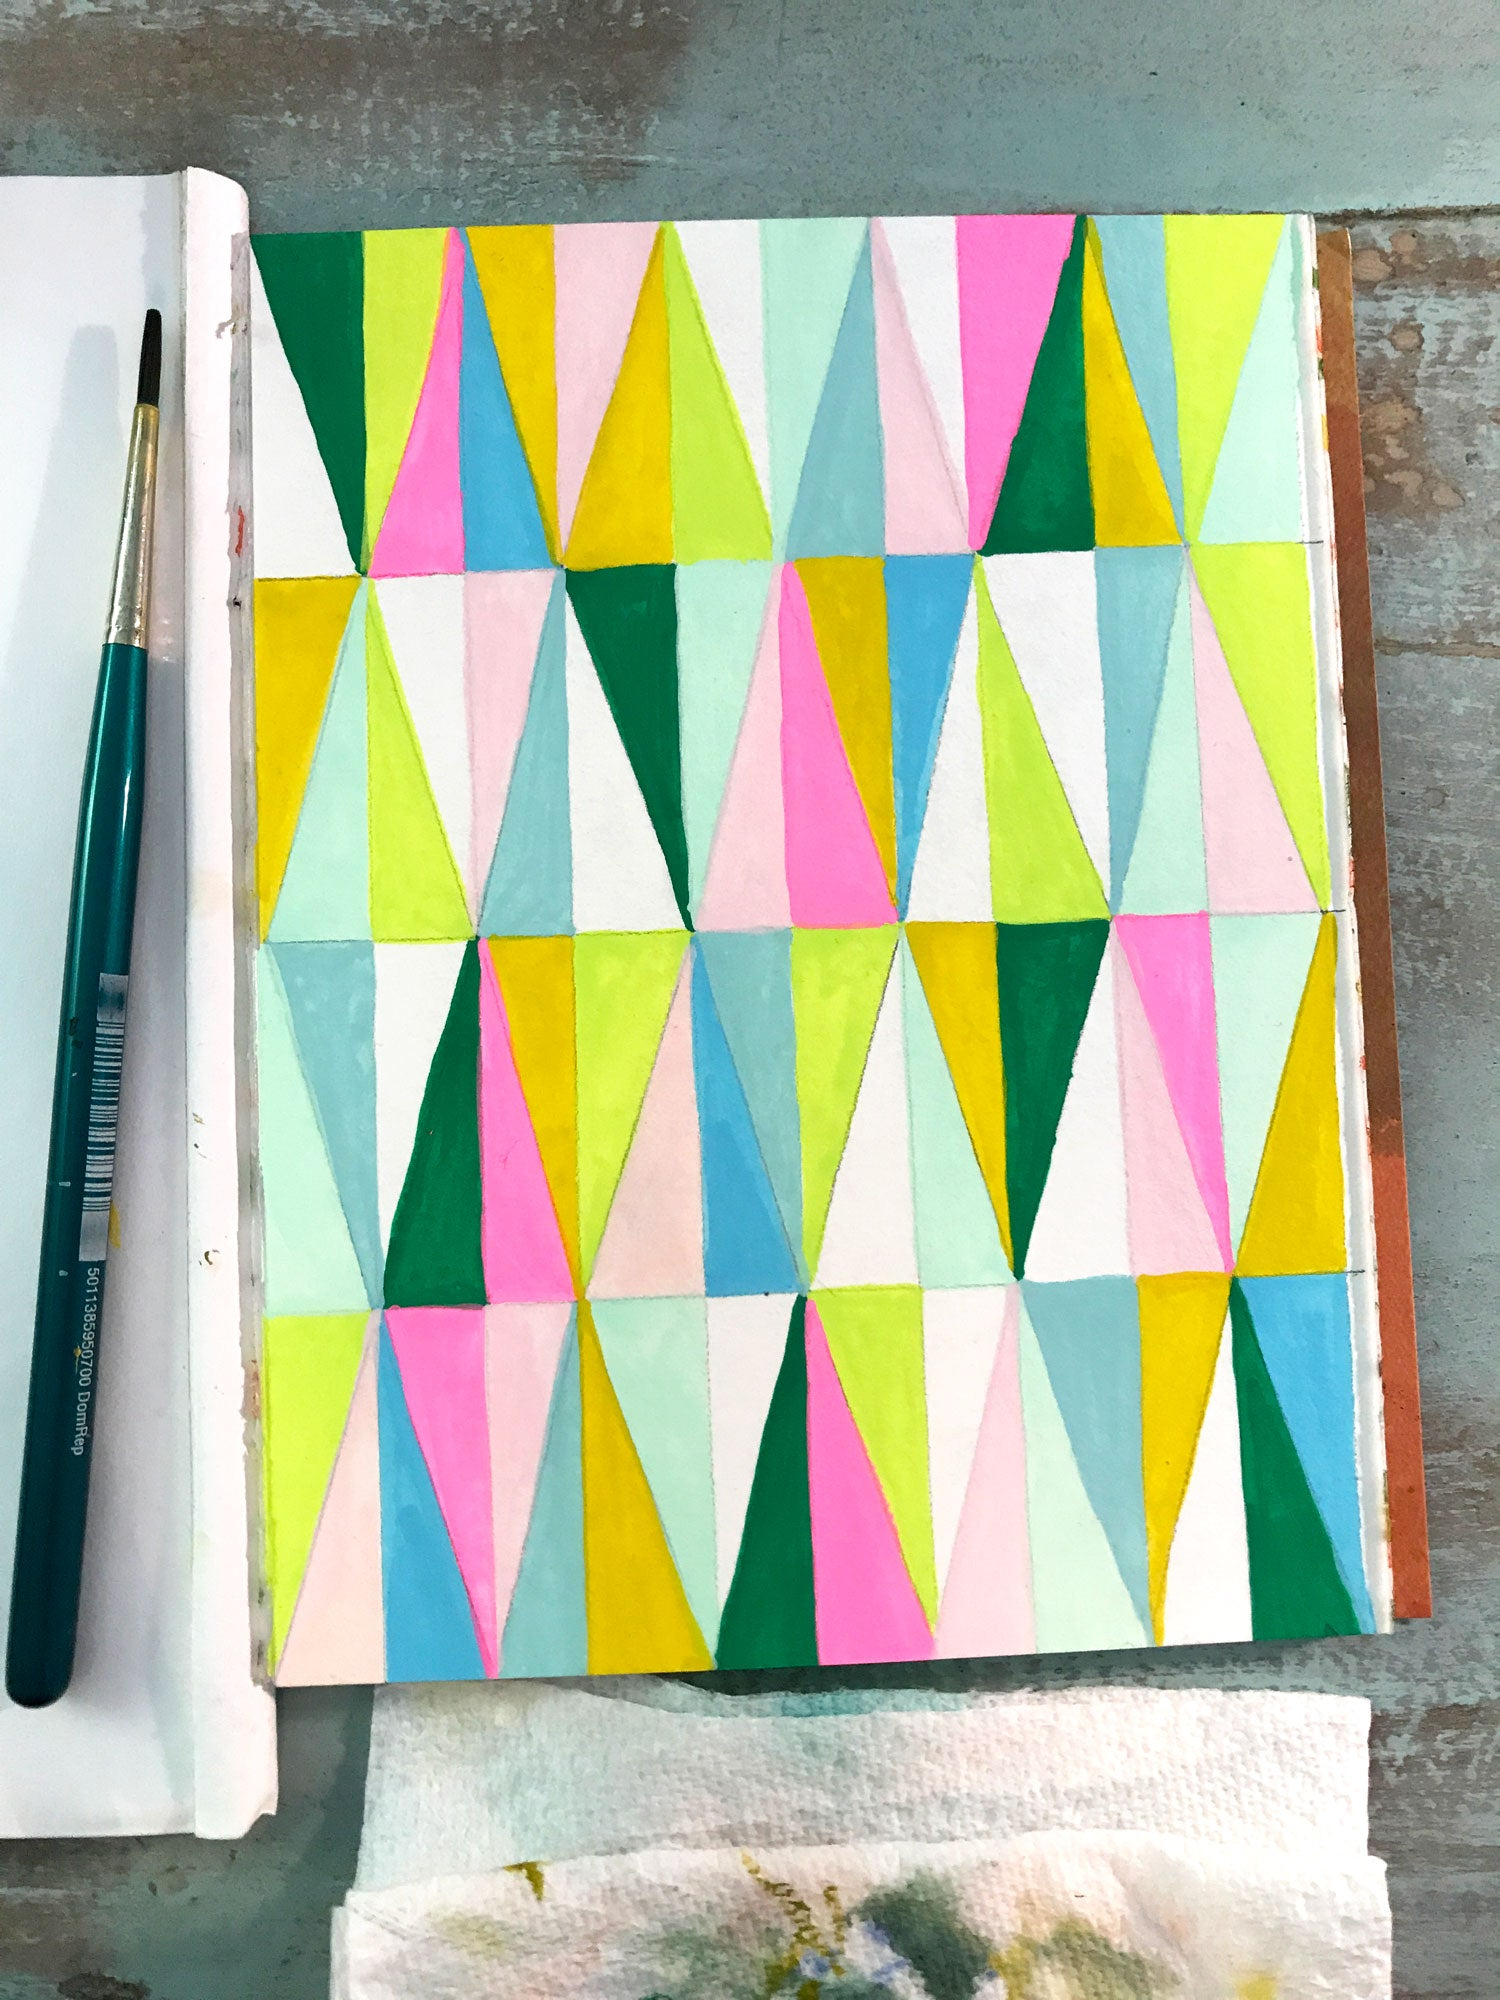 Harlequin Pattern Gouache Painting by Erika Firm